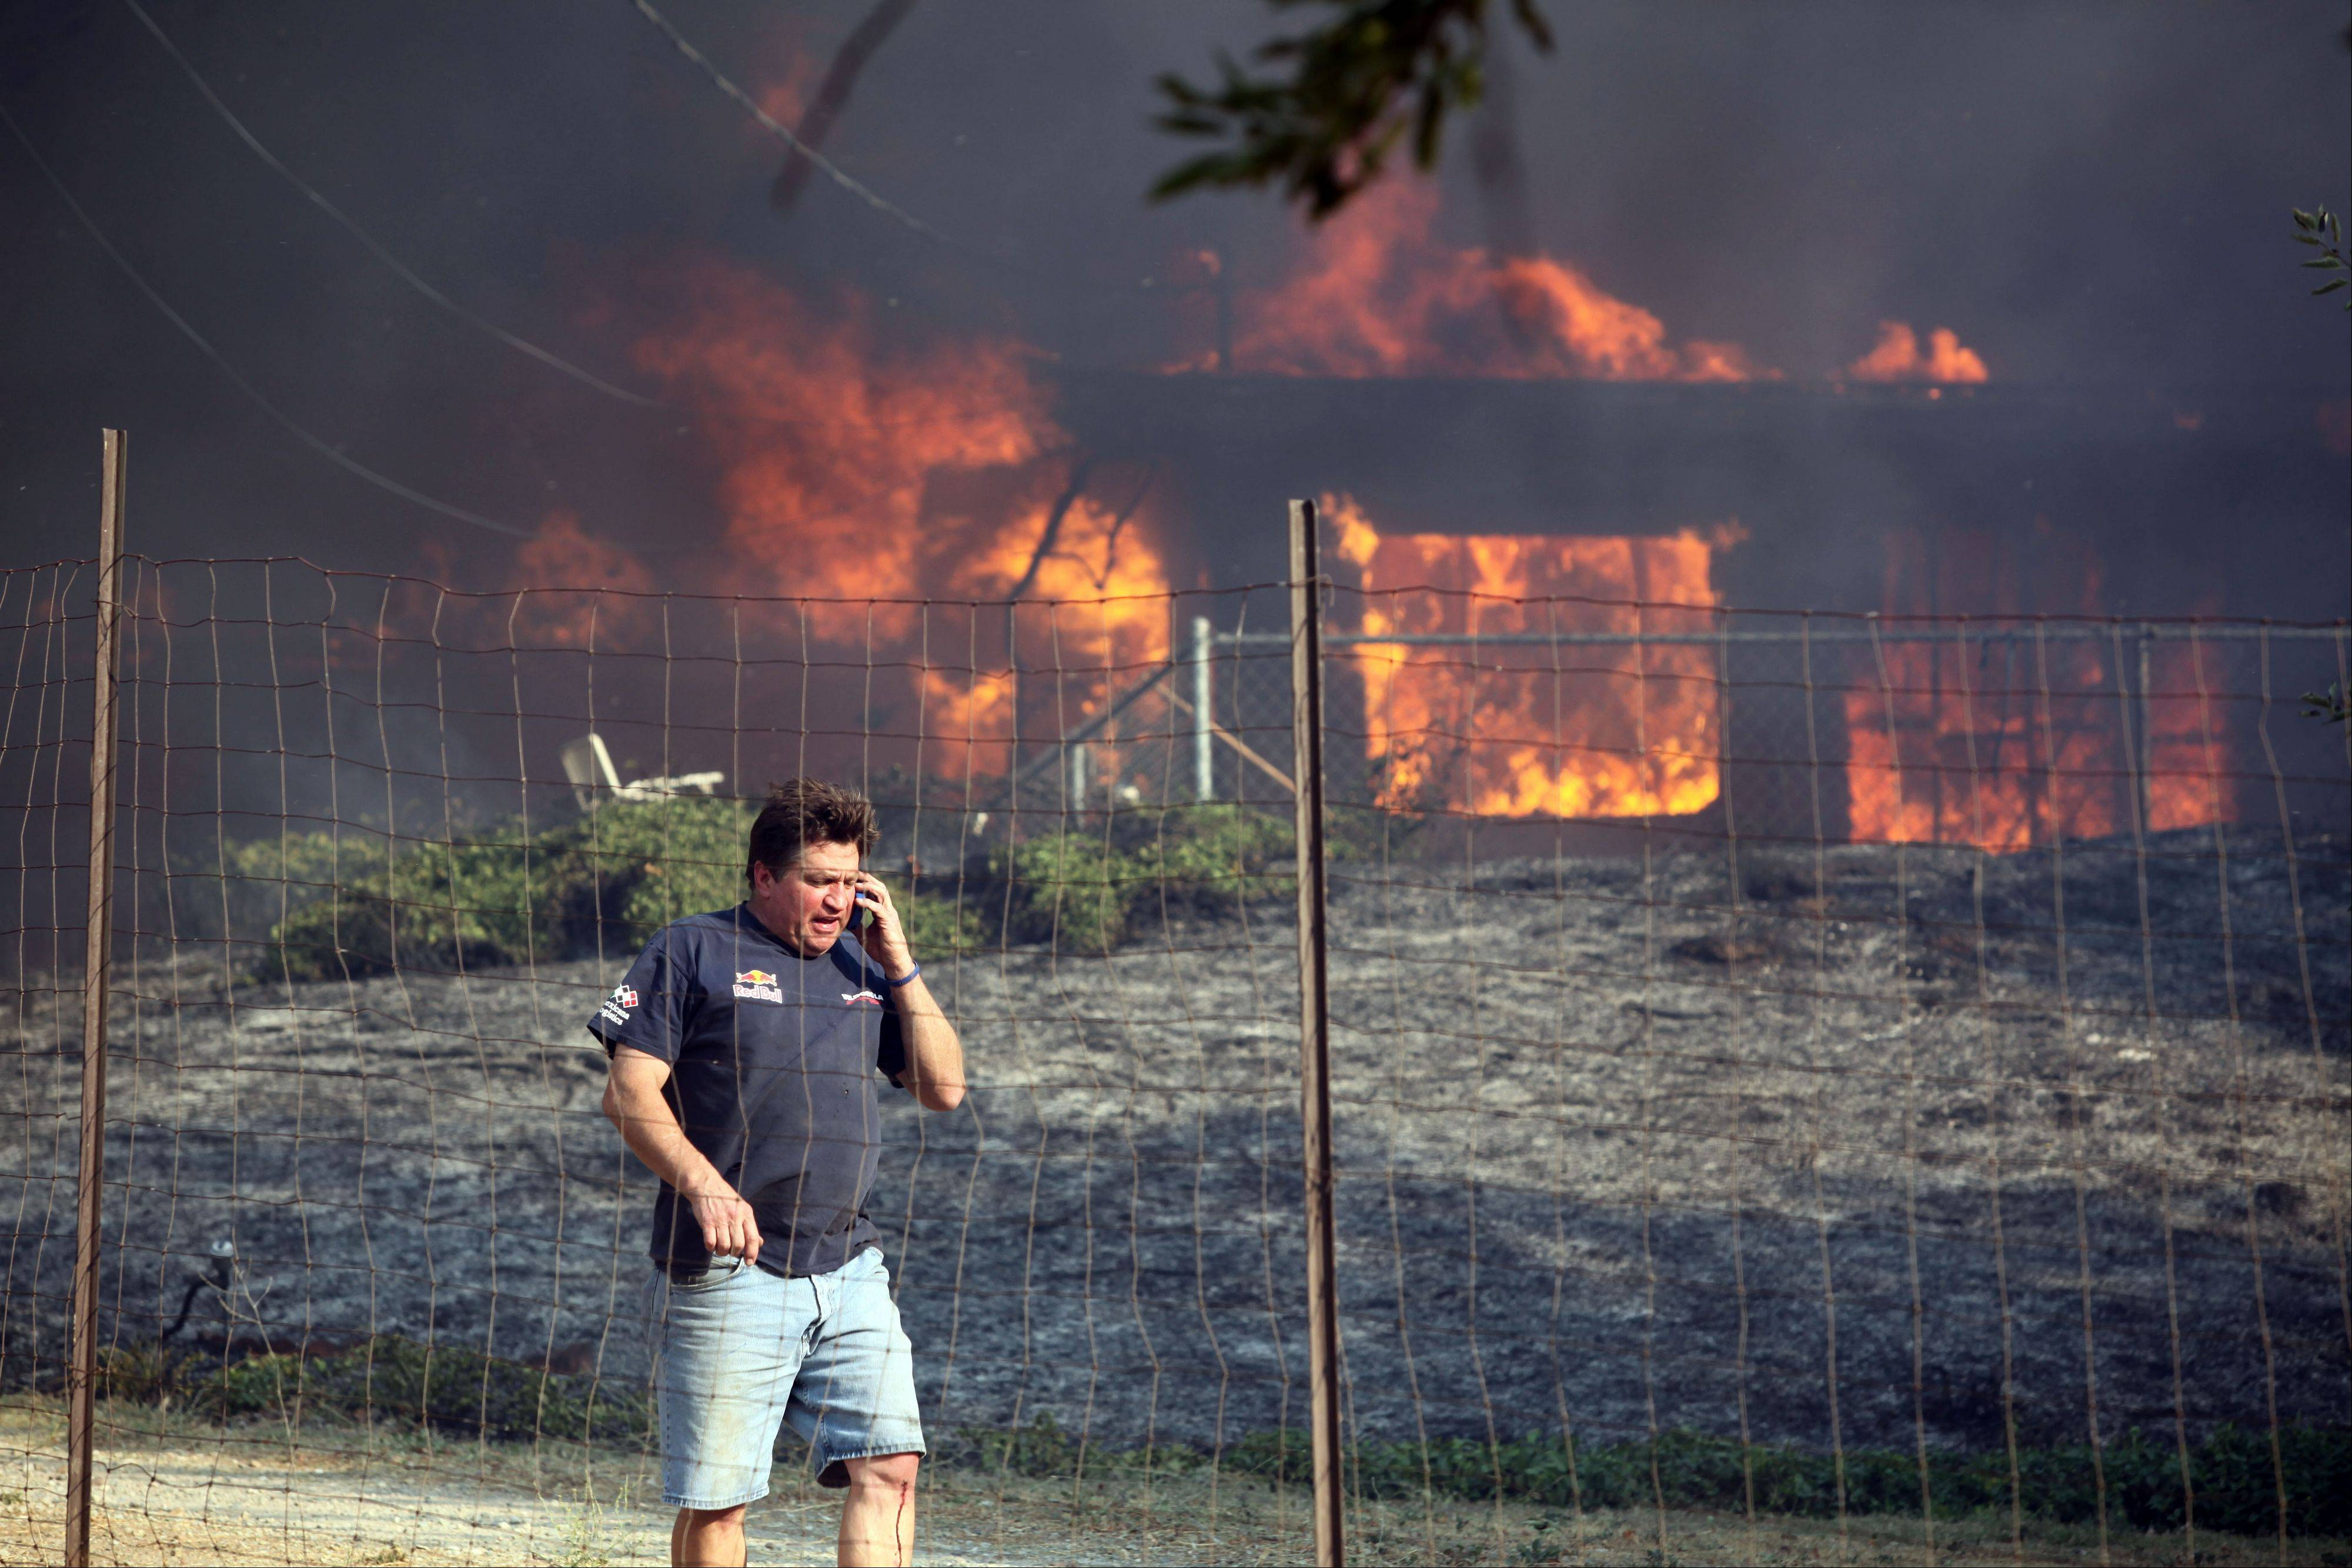 Dave Clark, of Twin Pines, tells a neighbor their house is ok as his own house burns on Wednesday, Aug. 7, 2013. Residents and sheriff's deputies were left without an escape route and stuck inside an evacuation area Wednesday night as a huge and growing Southern California wildfire left three people injured and burned homes.